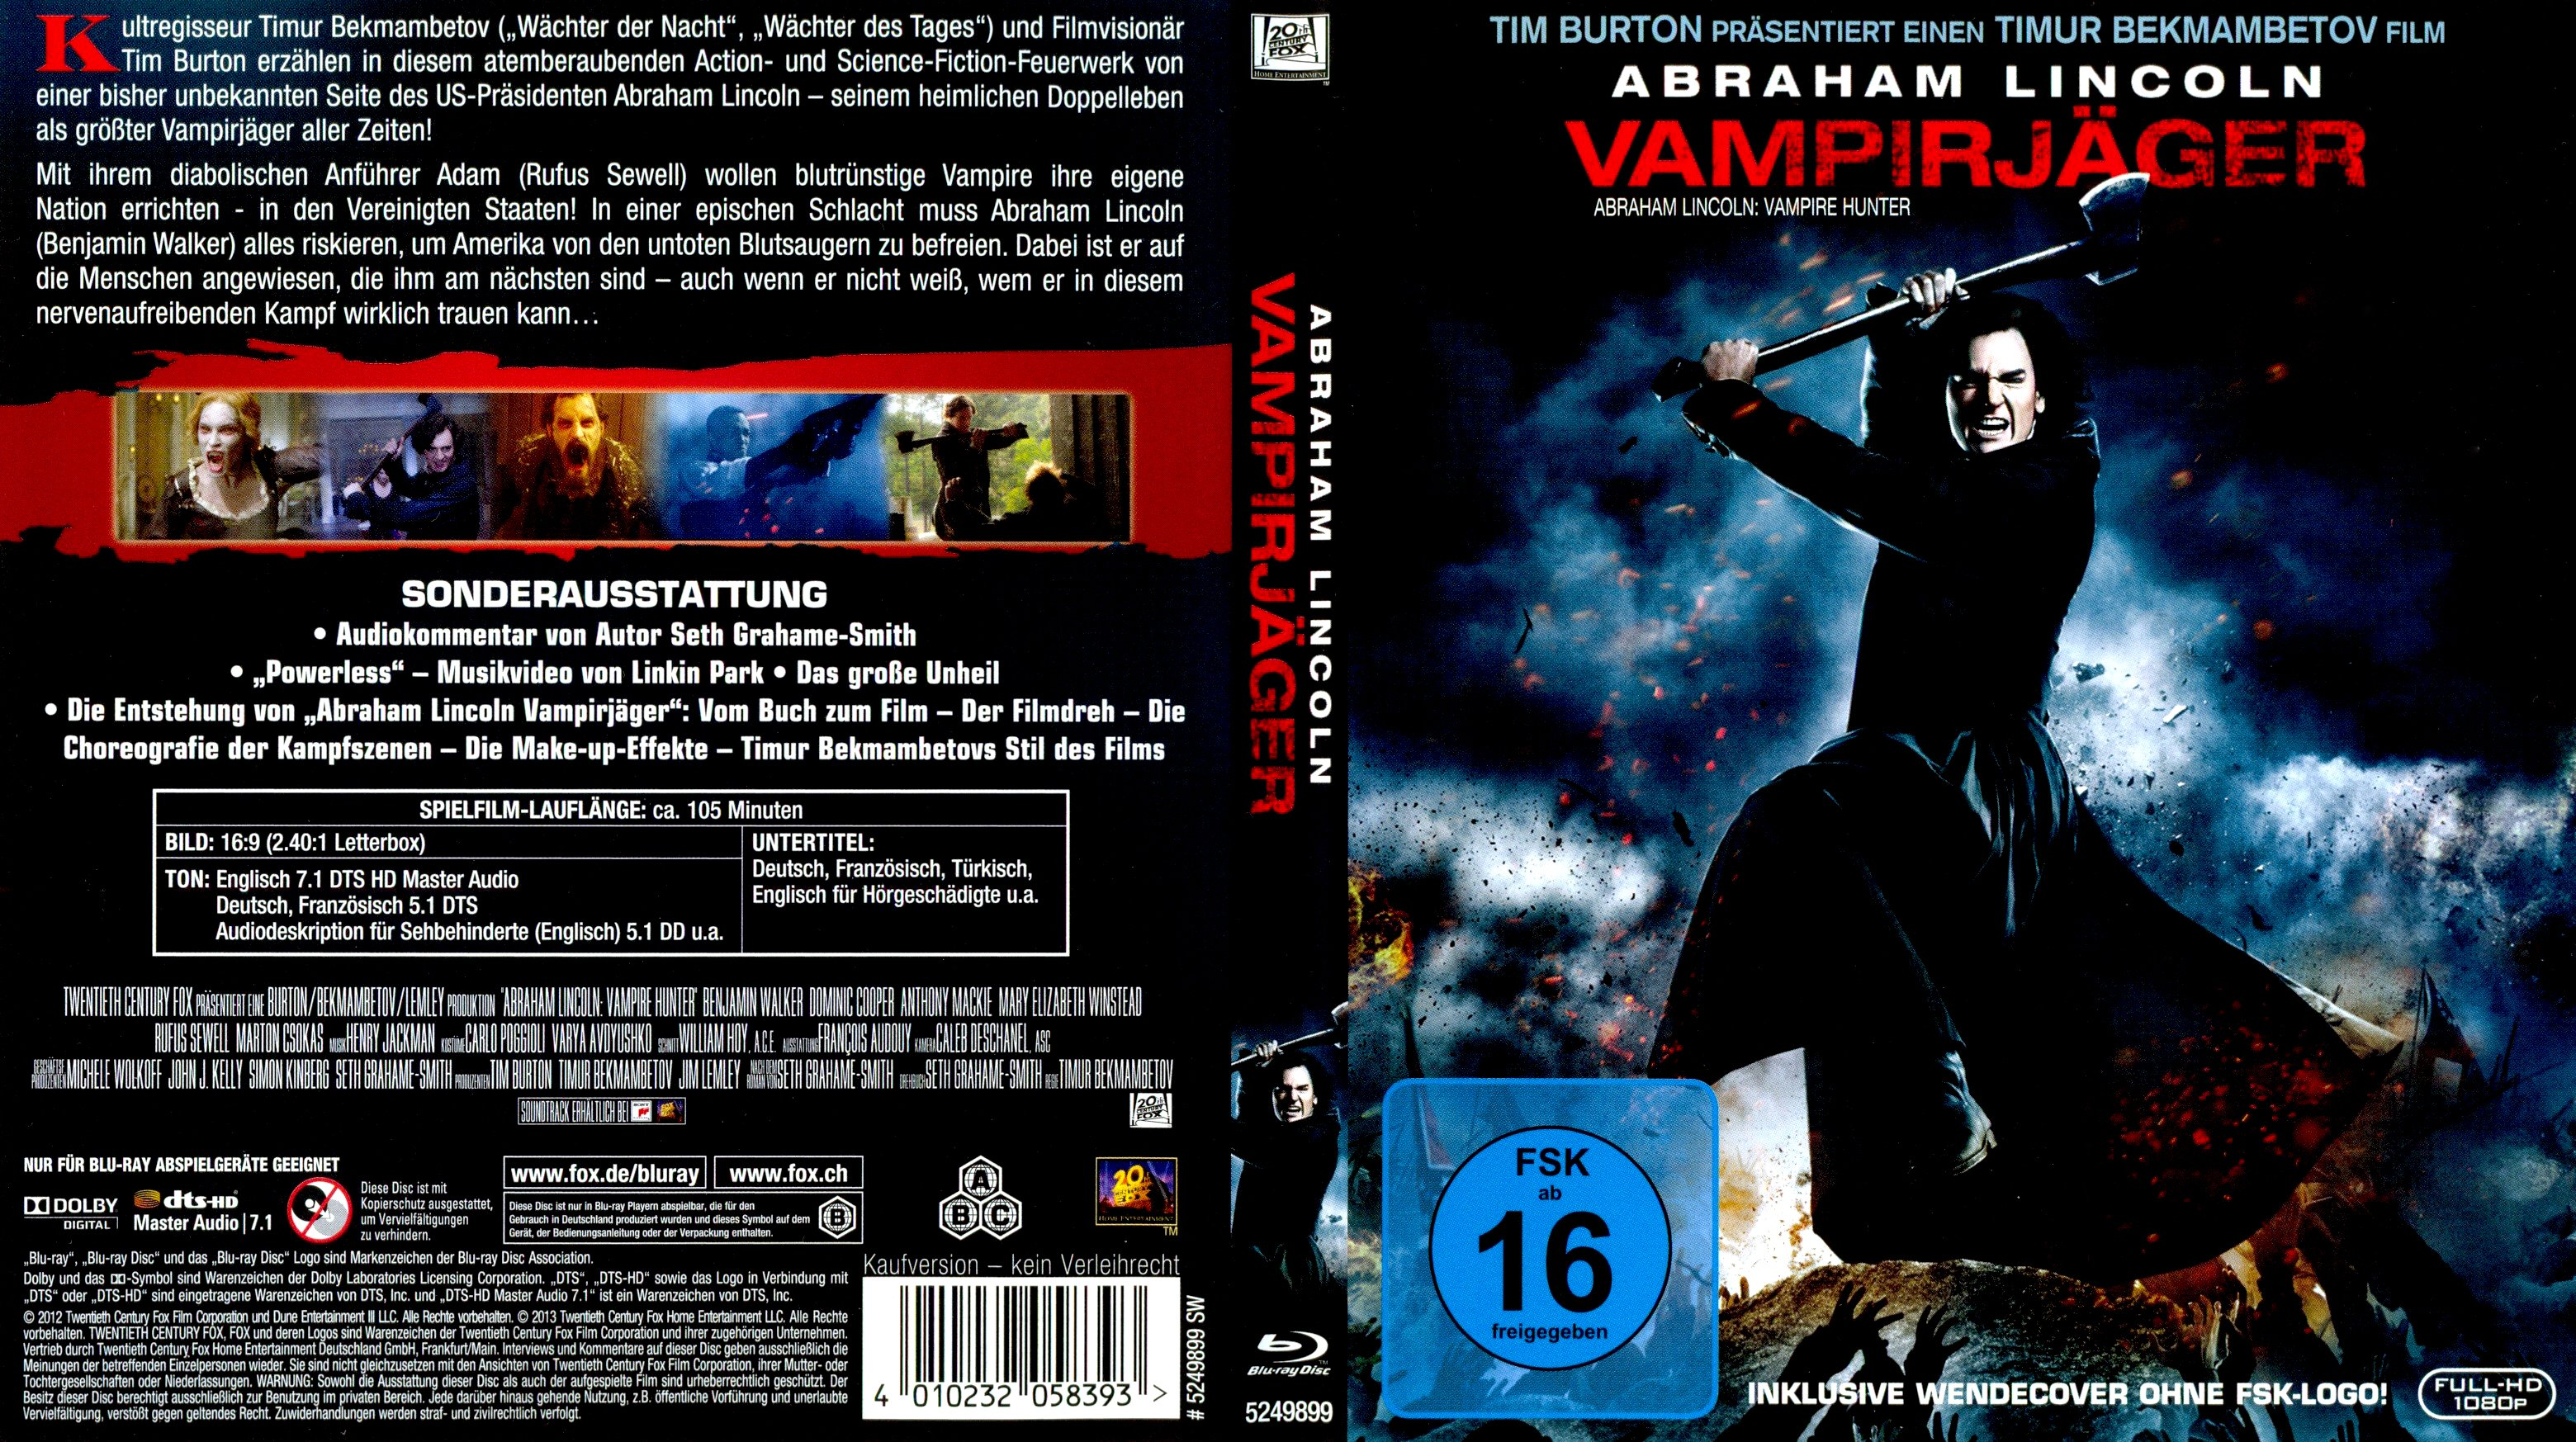 German Covers - Blu-ray Covers BD Covers - 10000 BC, 12 Monkeys, 12 ...